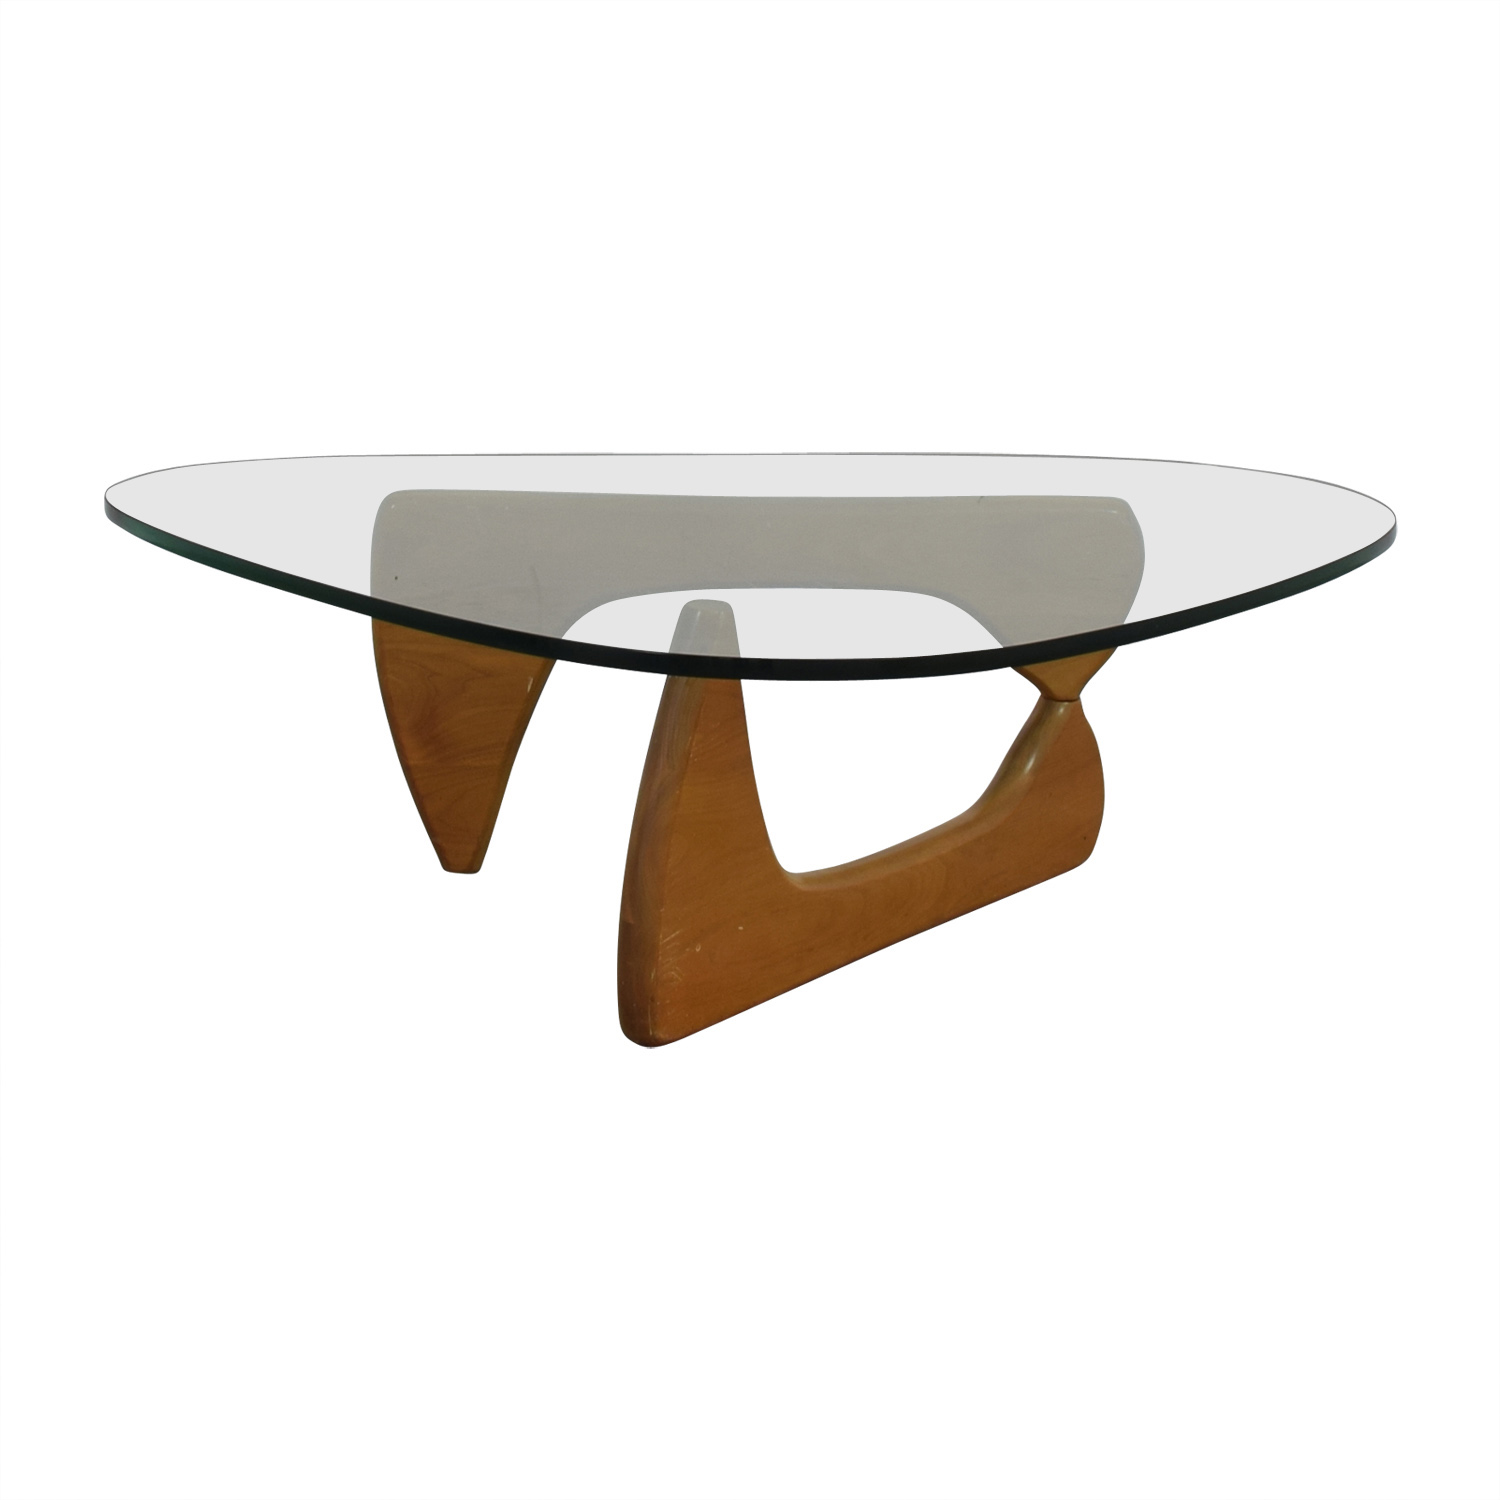 Herman Miller Noguchi Glass and Wood Table sale